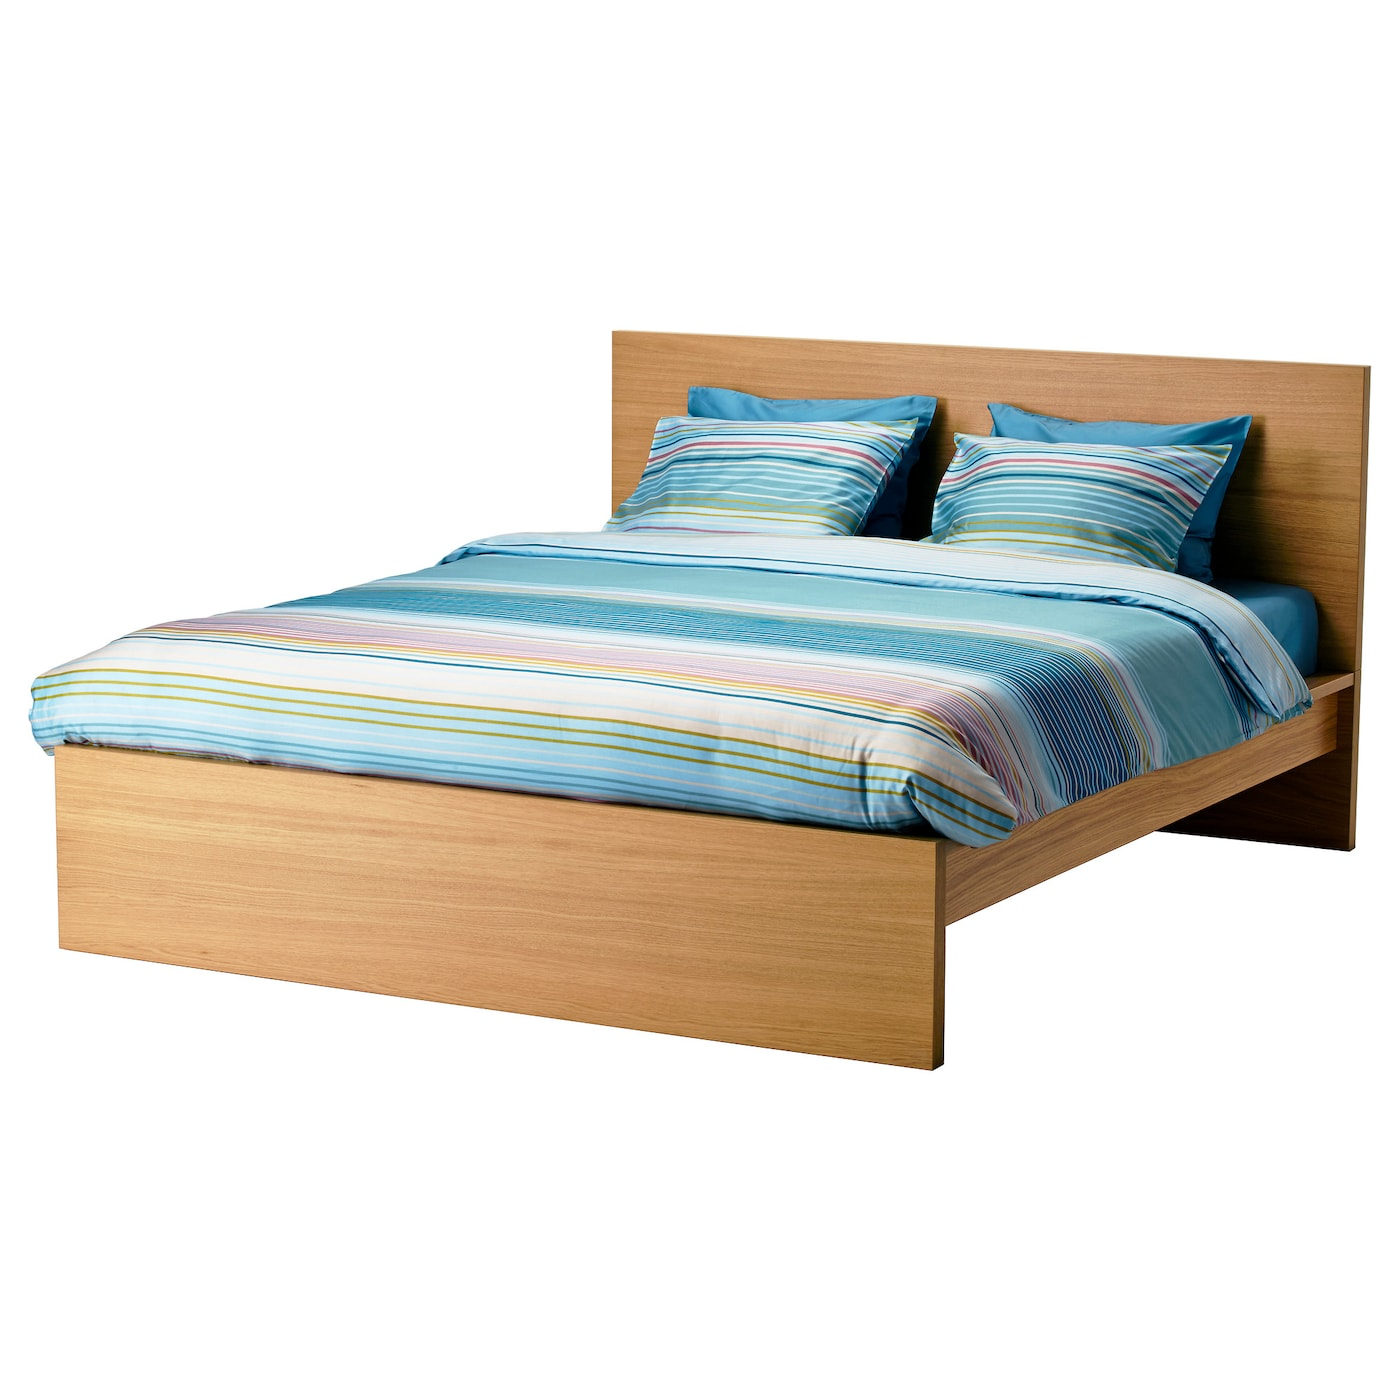 Uncategorized Bed Frames From Ikea malm bed frame high oak standard double ikea real wood veneer will make this age gracefully